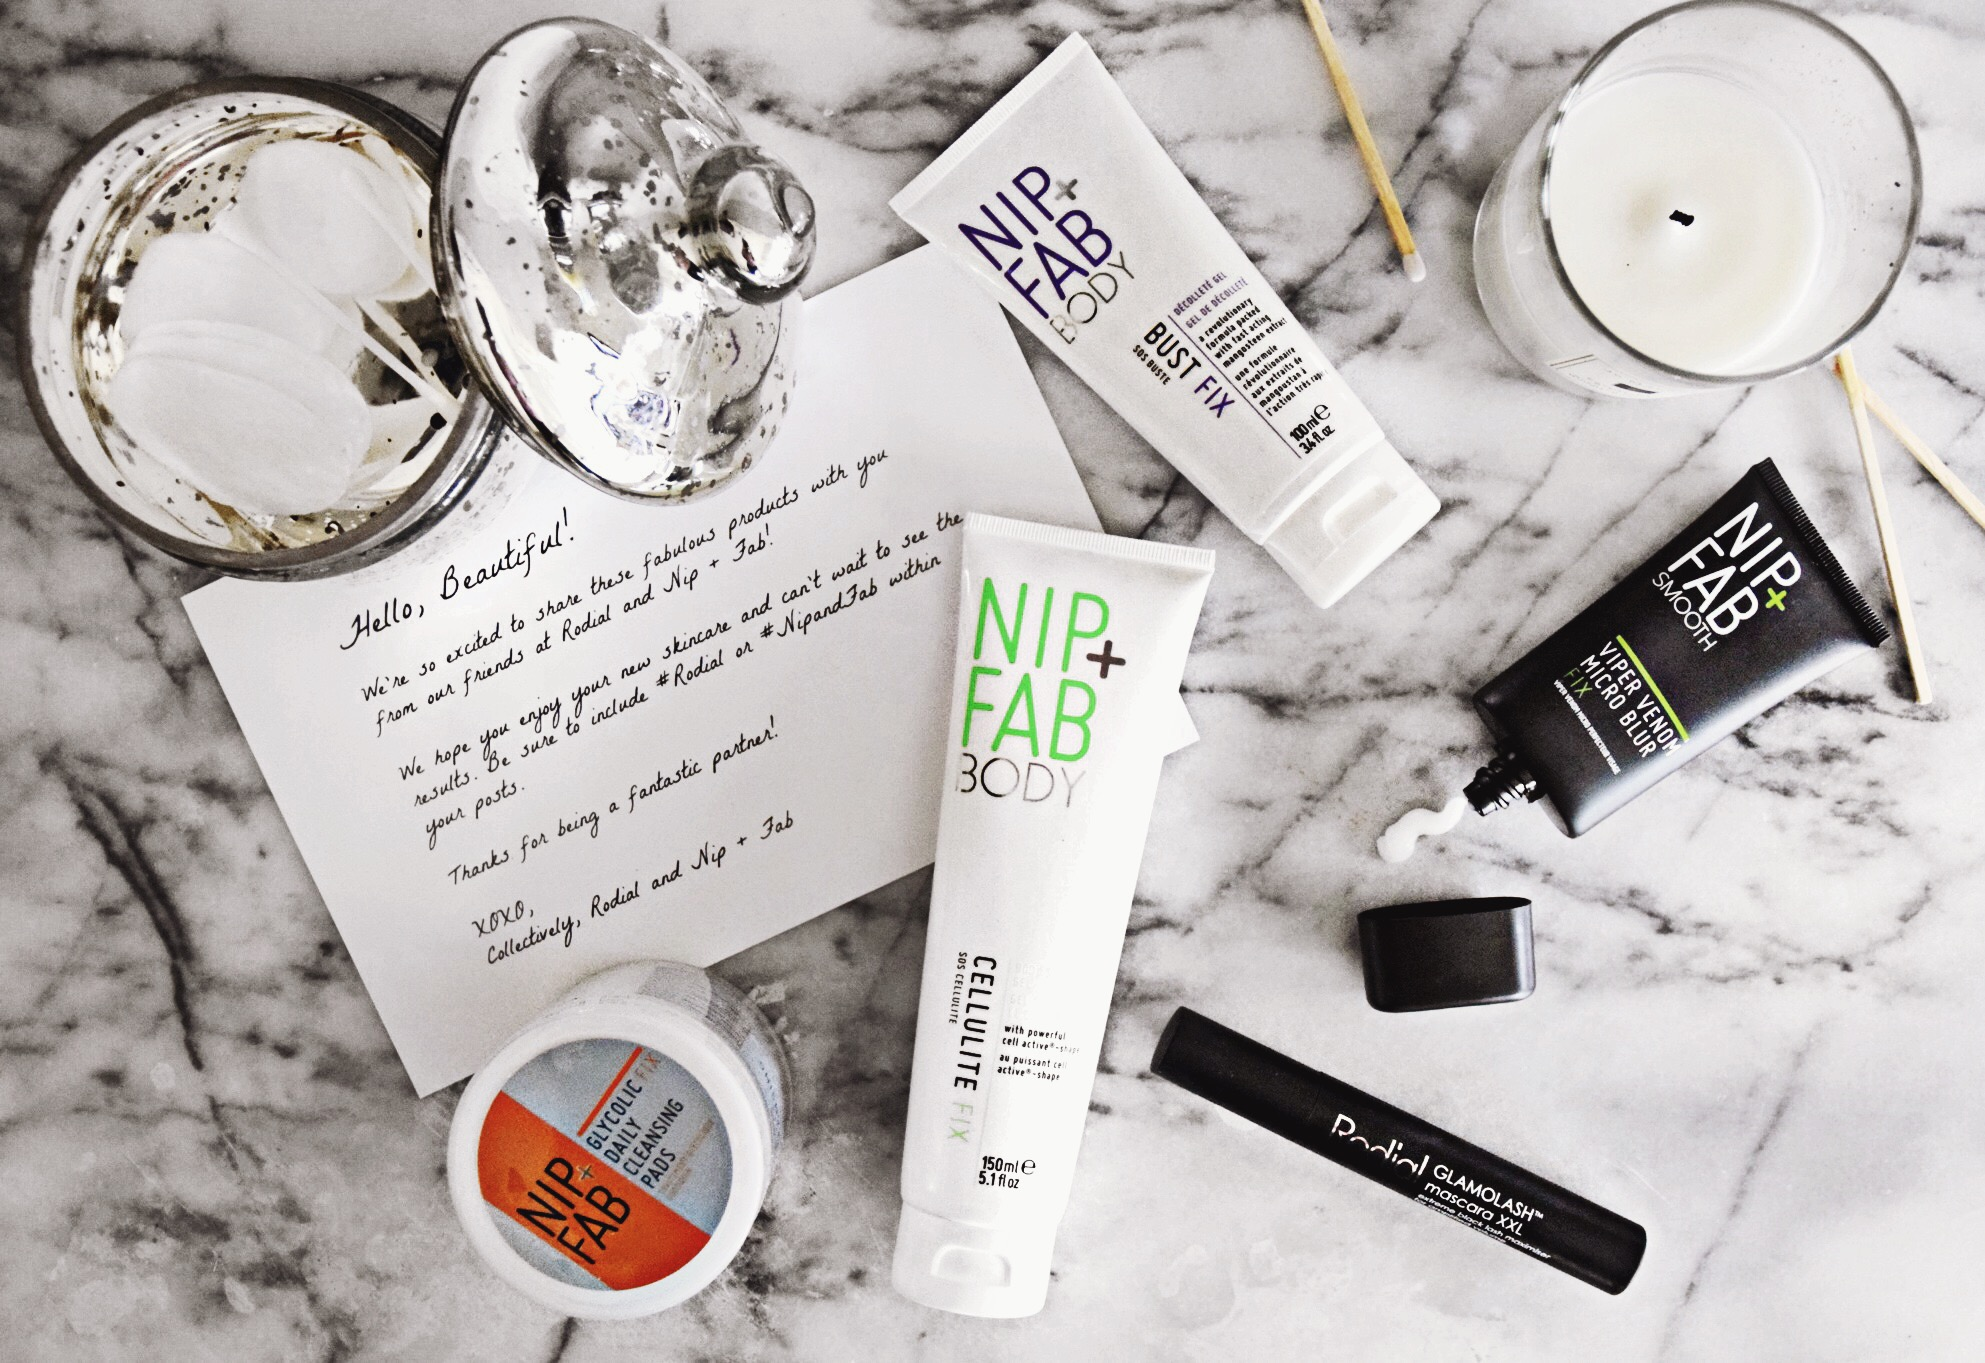 On My Vanity | Nip + Fab // Skincare Review // Nip + Fab Review // Los Angeles Fashion Blogger Daphne Blunt: To Style, With Love